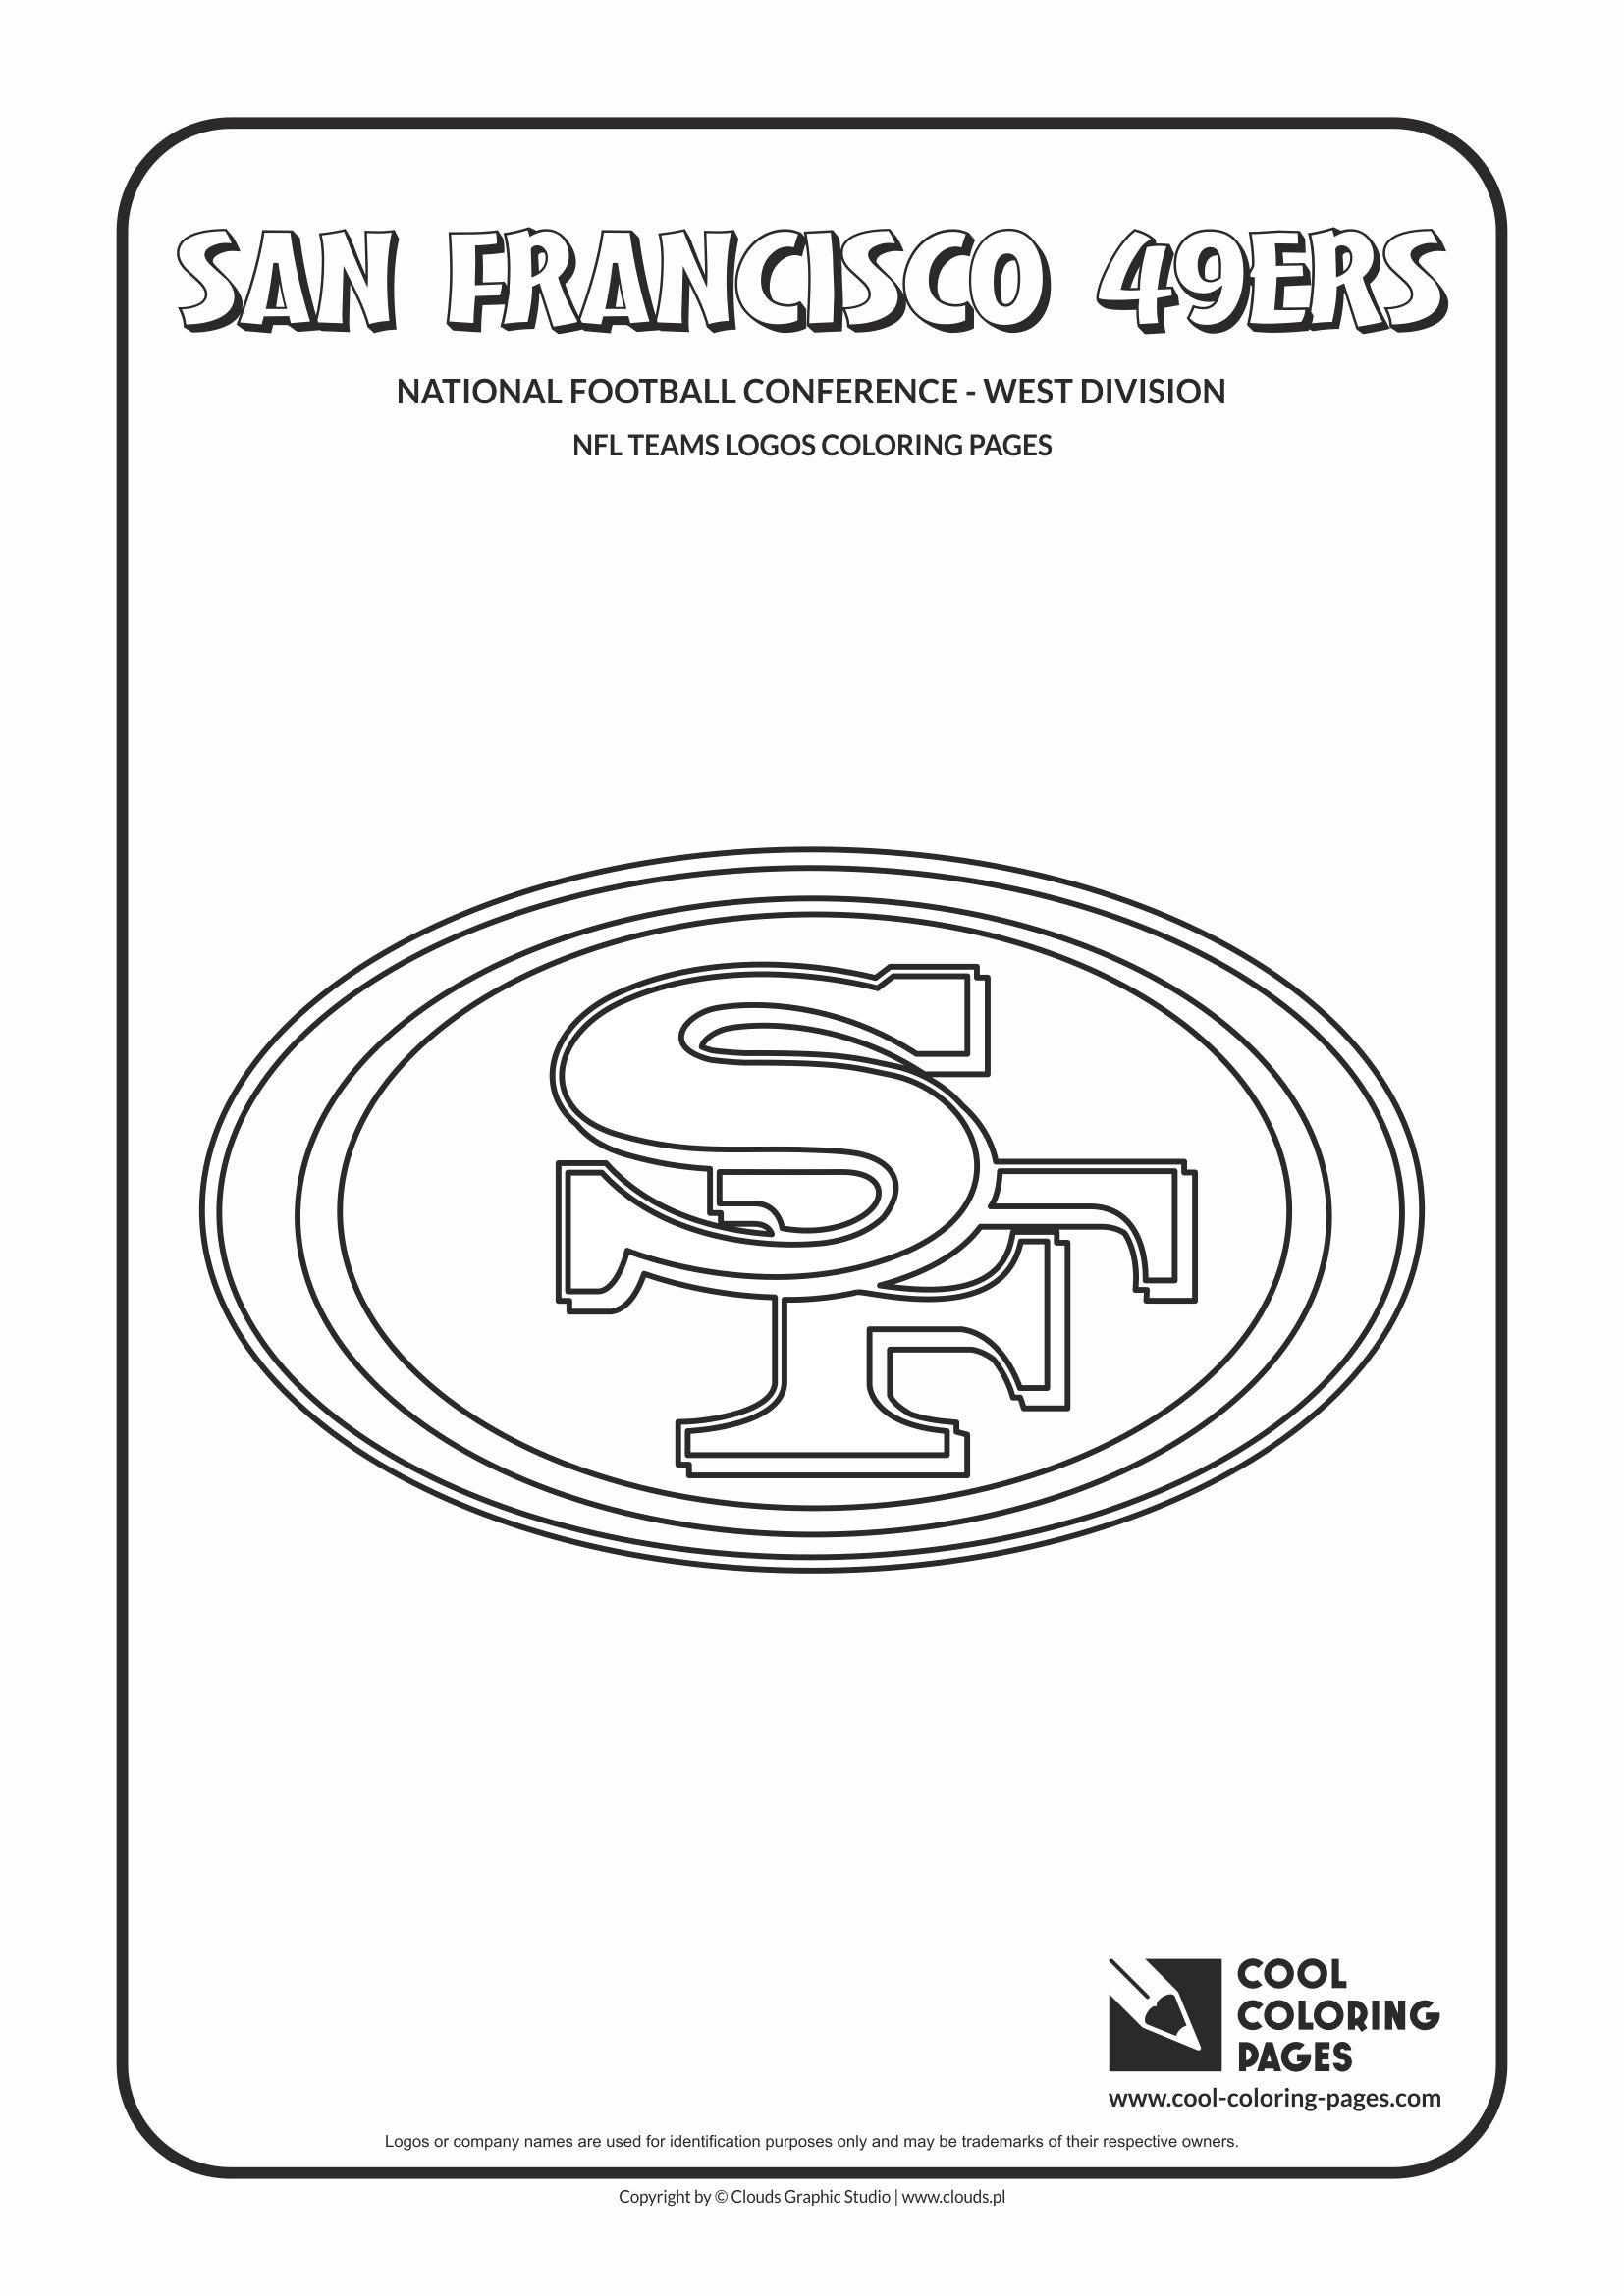 Cool Coloring Pages Nfl Teams Logos Coloring Pages Cool